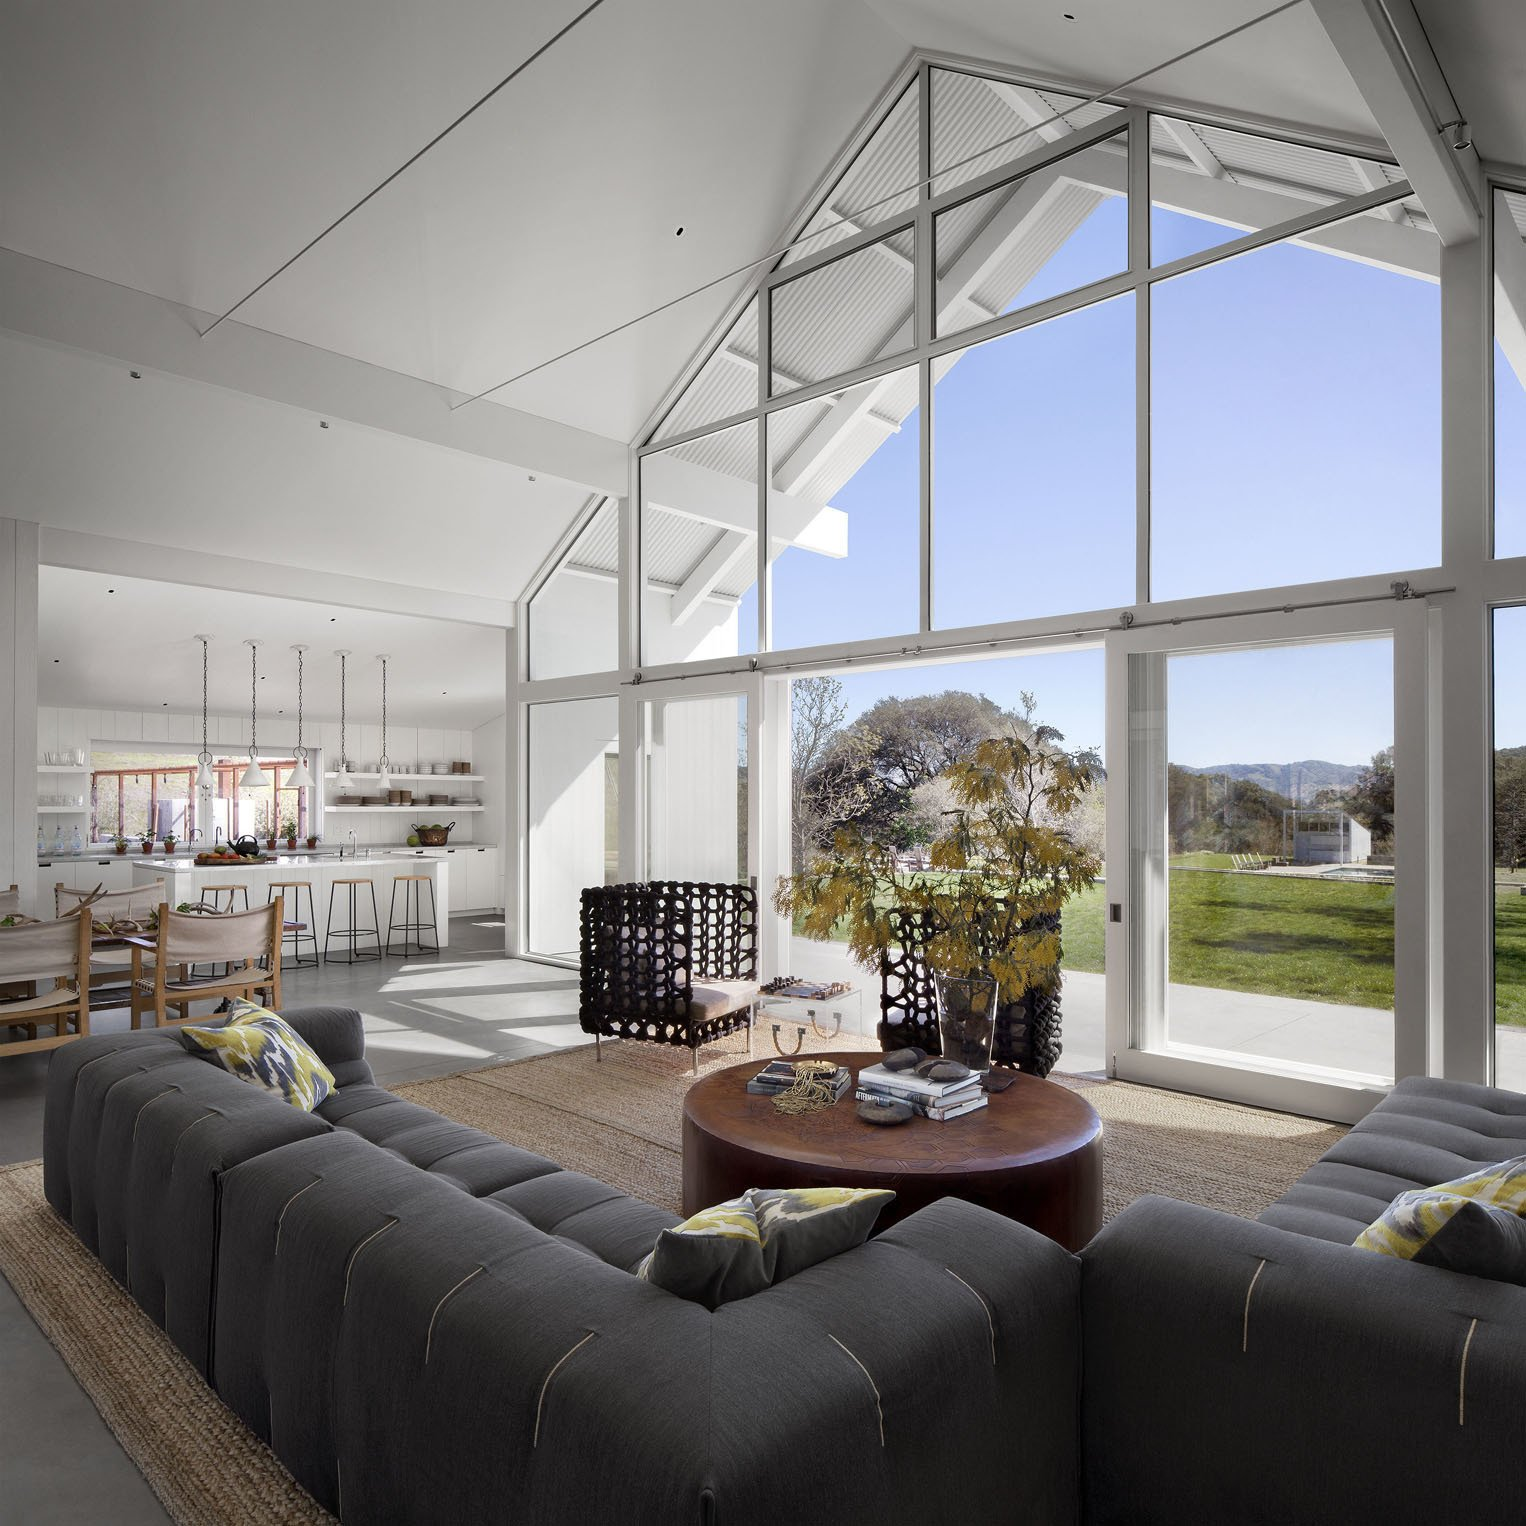 The dark Tufty-too sofas by Patricia Urquiola from B&B Italia contrast with the living room's abundance of light. A LEED Platinum Family Home Takes the Place of an Abandoned California Farmhouse  by Kelly Dawson